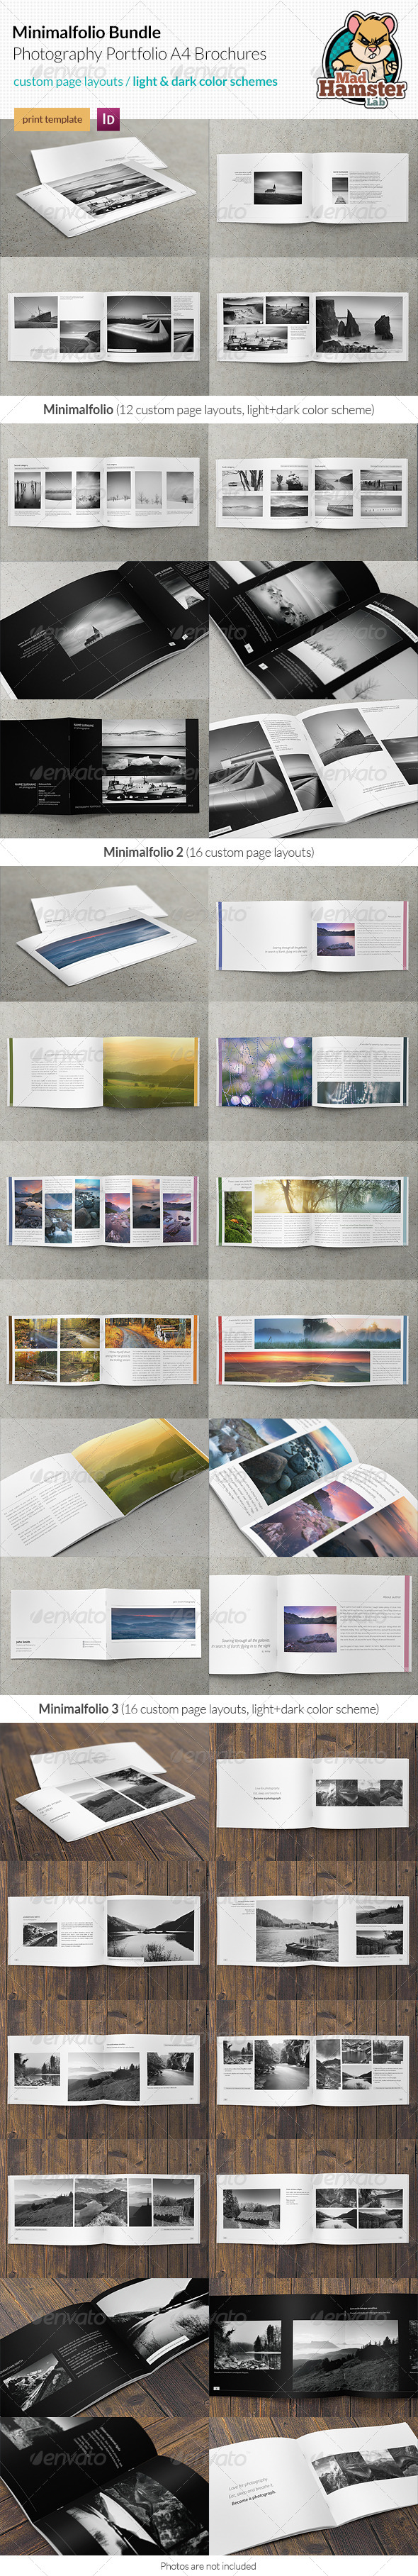 GraphicRiver 3x Minimalfolio Photography Portfolio A4 Brochures Bundle 4718838